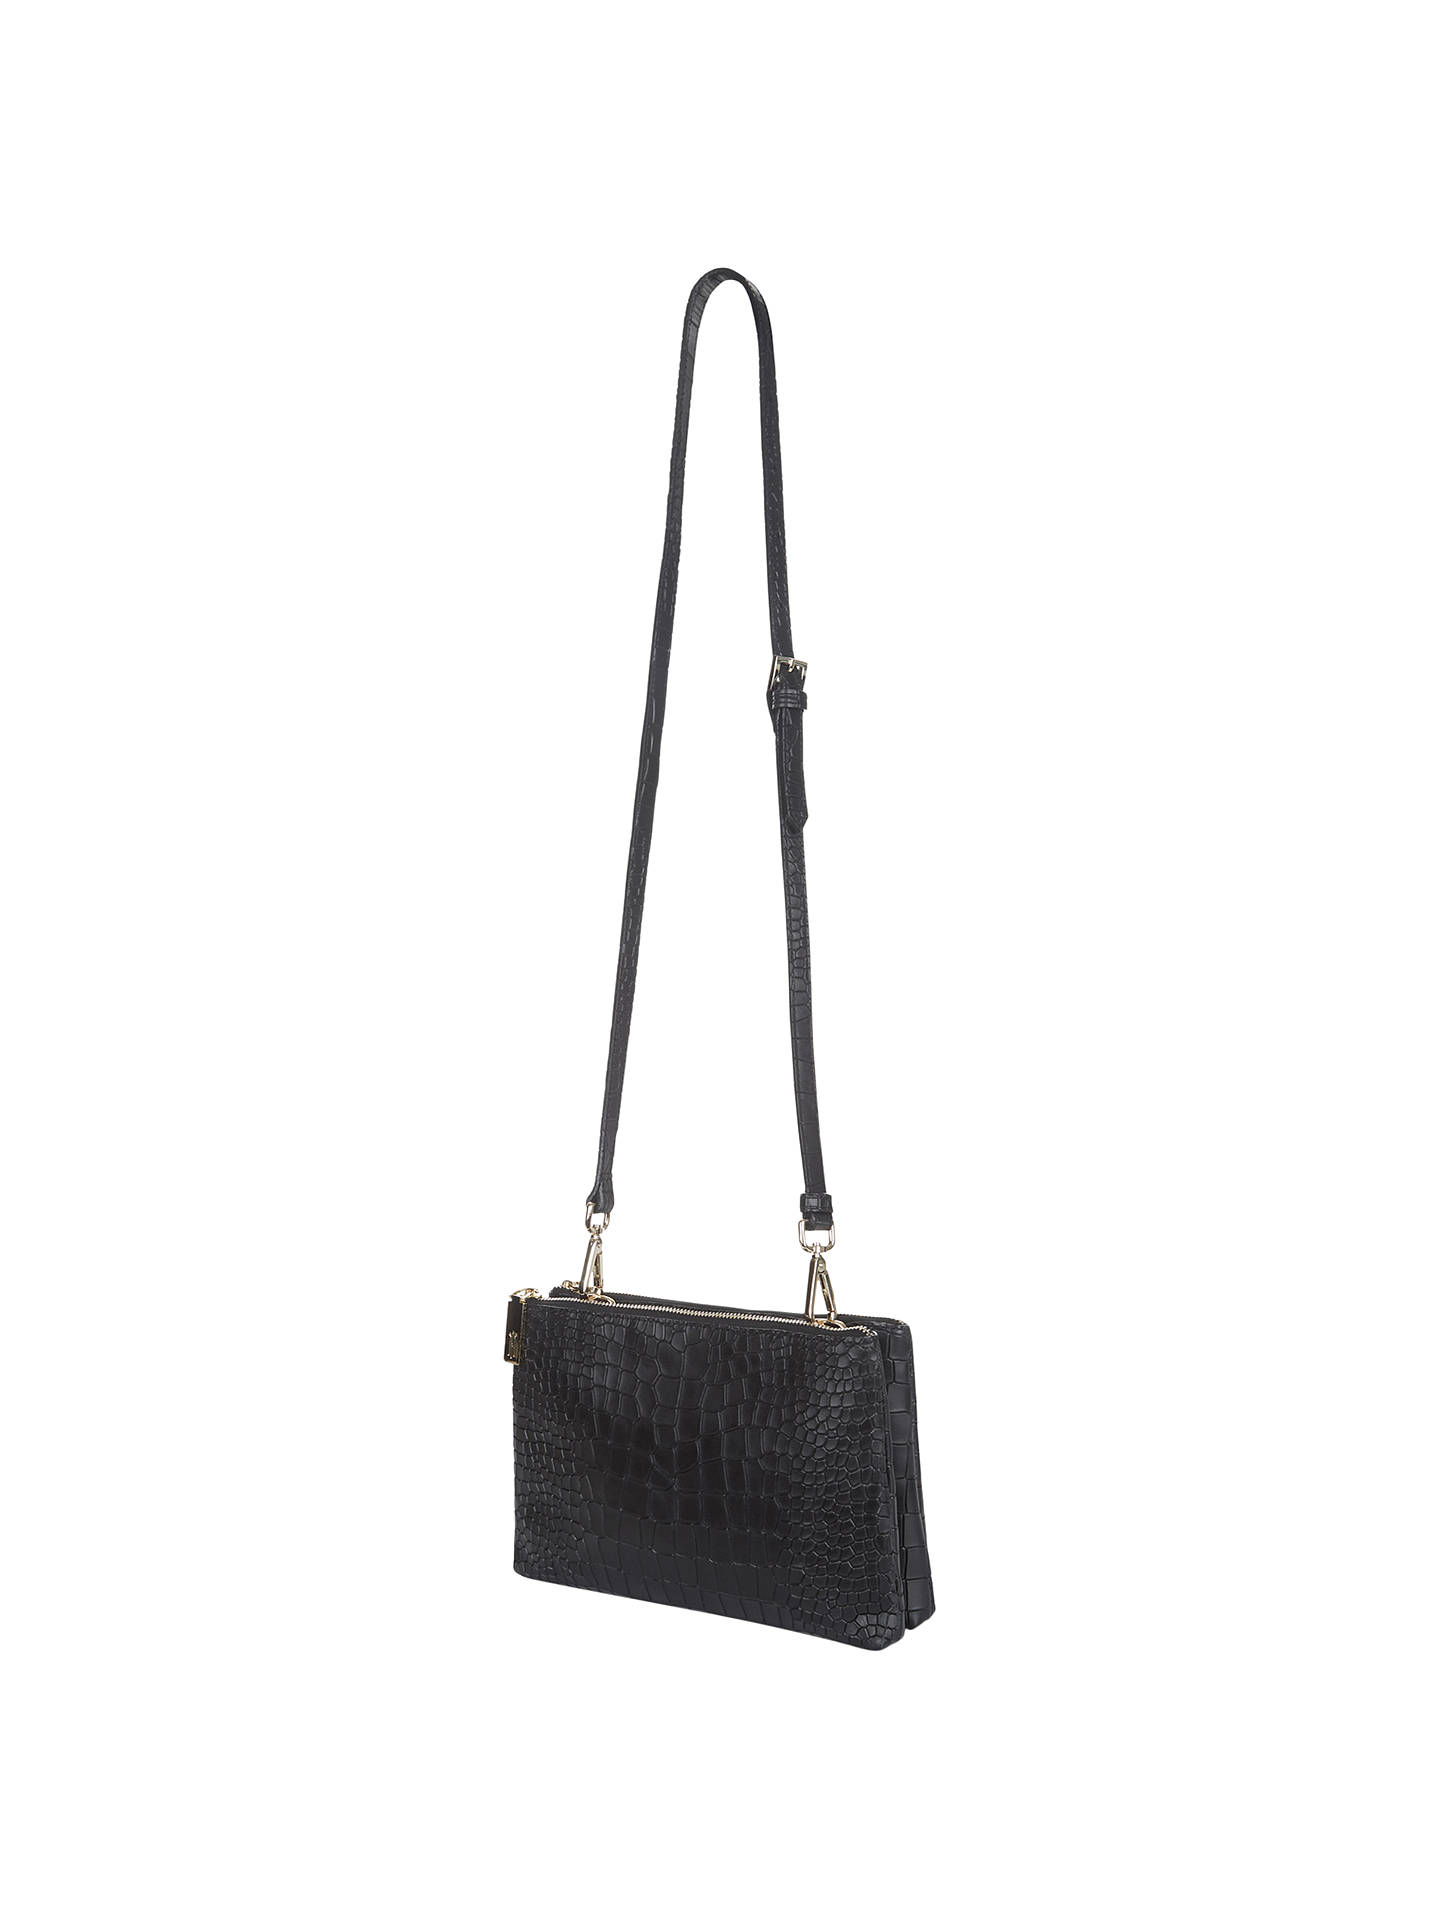 b9a8261f97 ... Buy Hobbs Bloomsbury Cross Body Bag